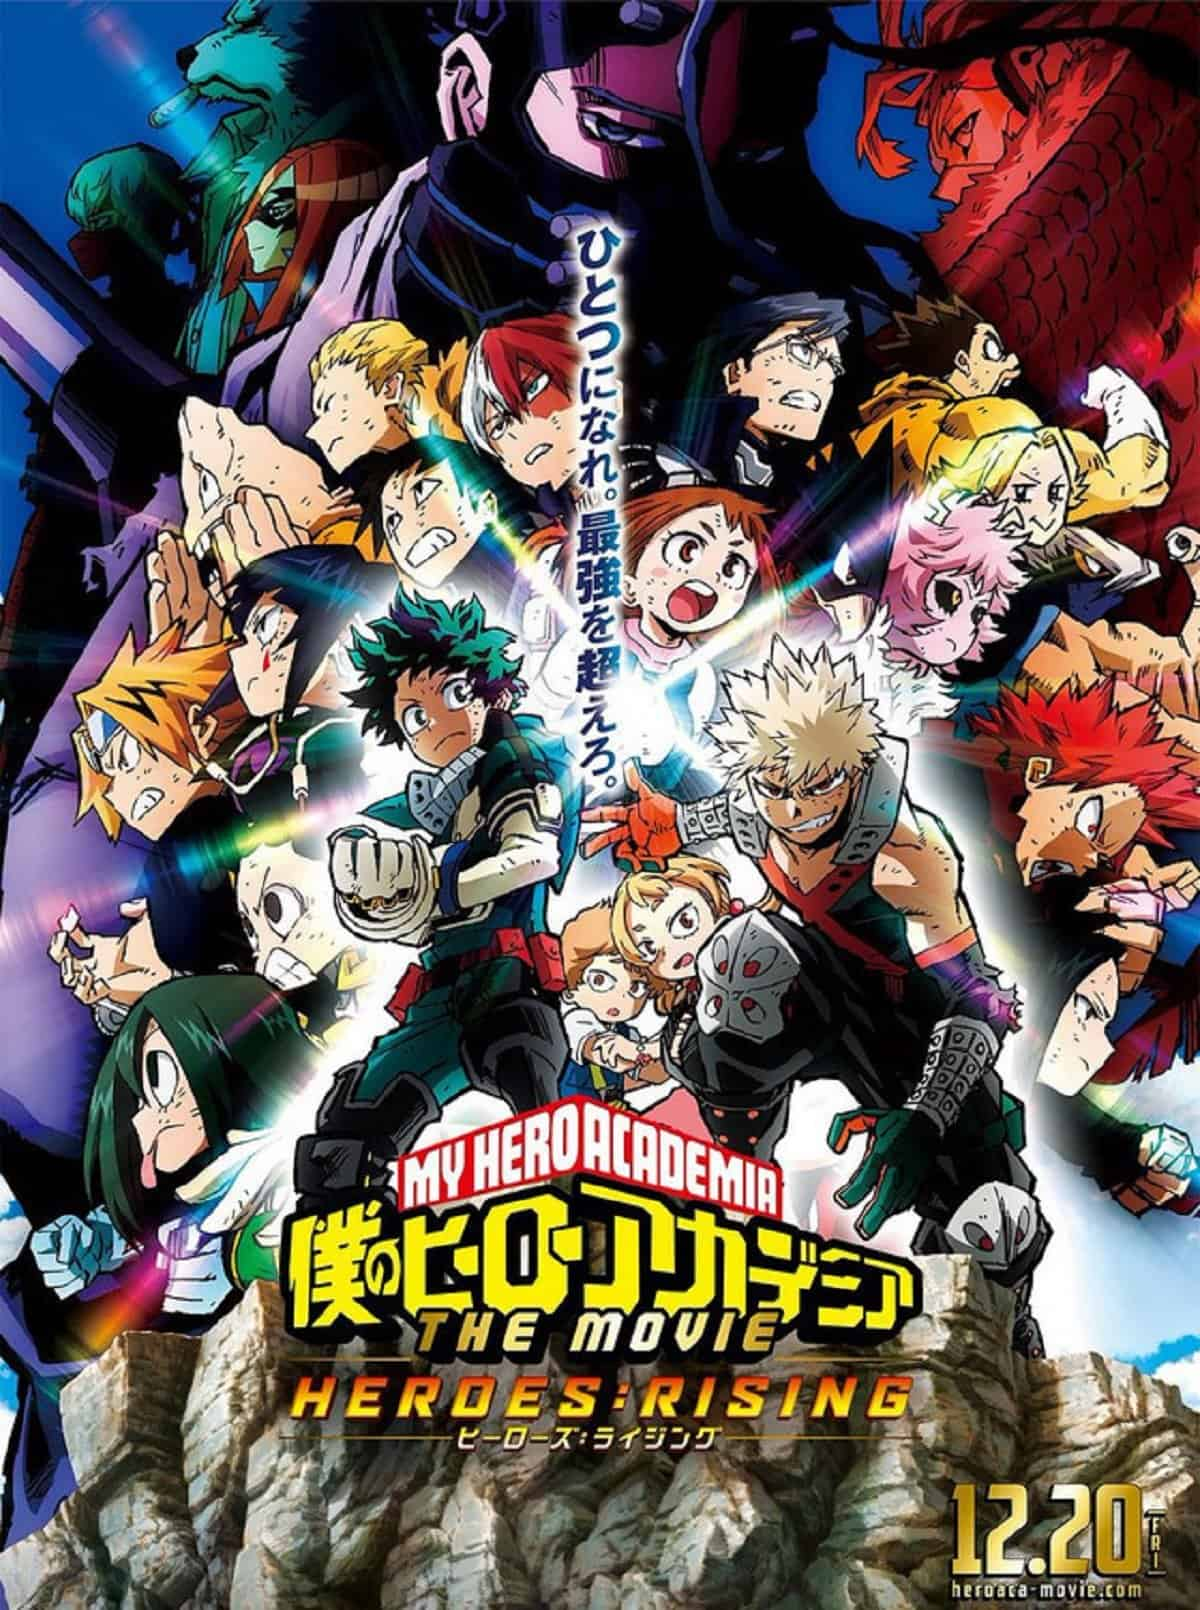 New one sheet for the 2nd My Hero Academia movie